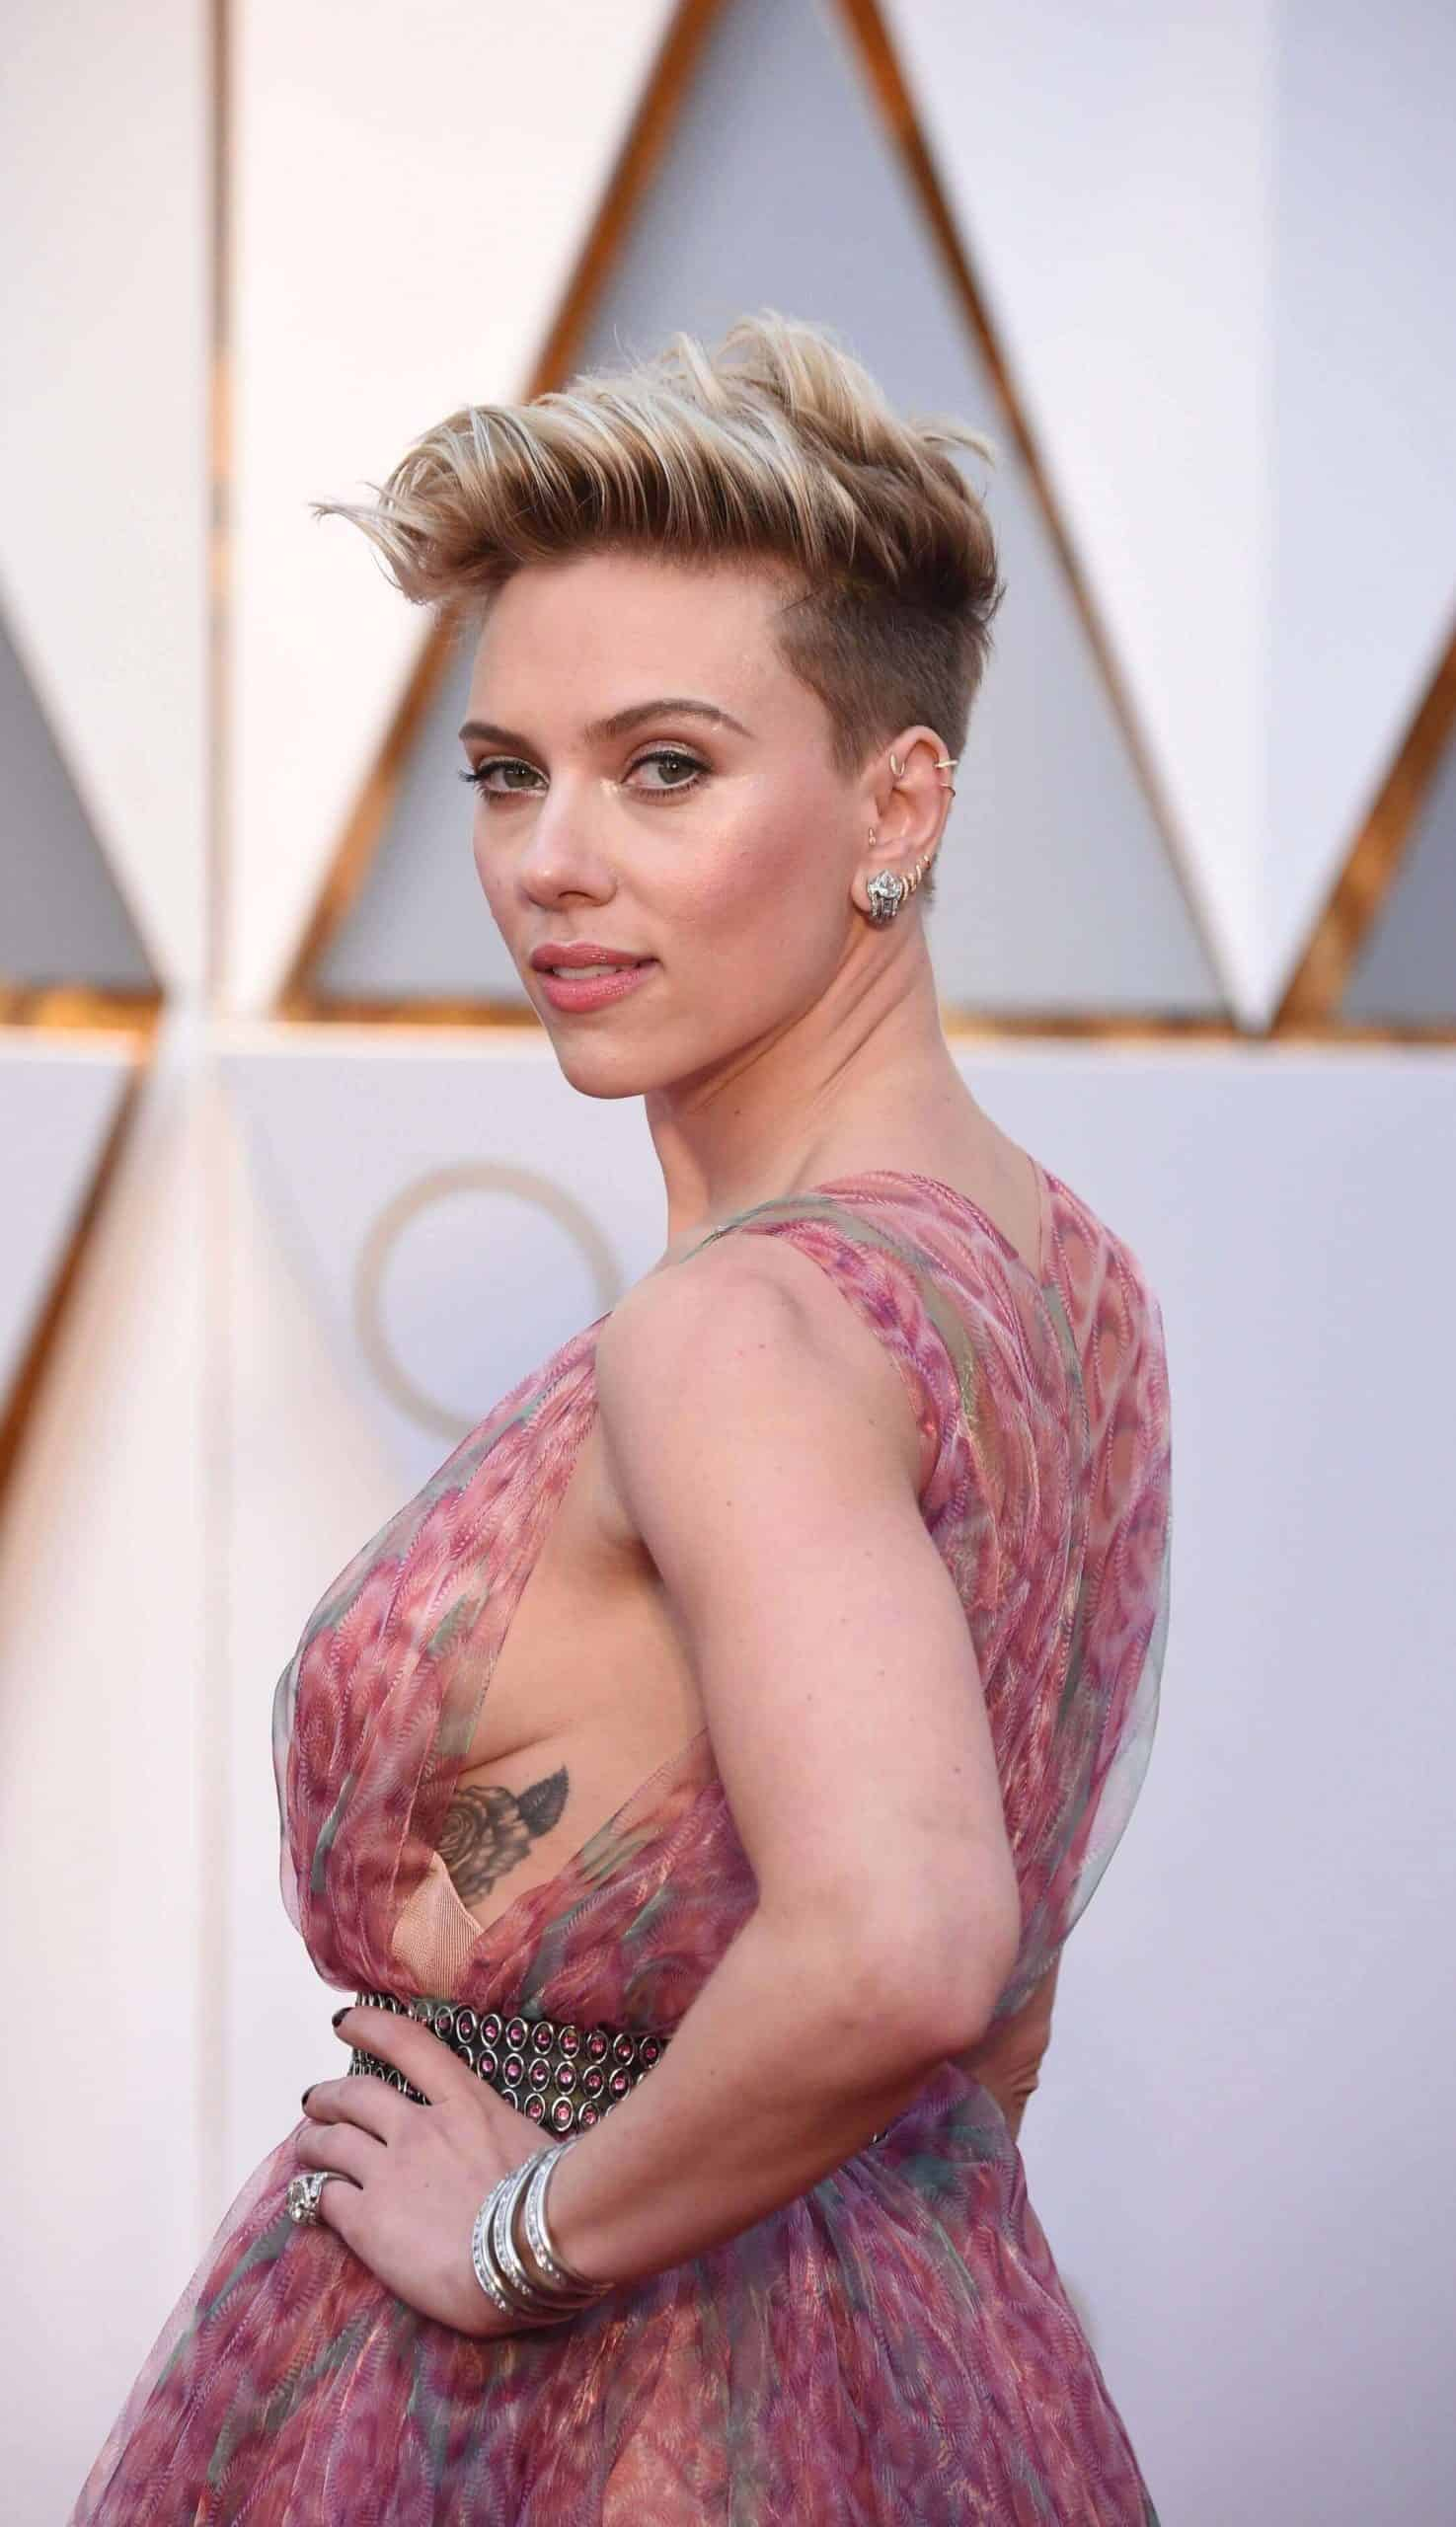 scarlett johansson rose tattoo